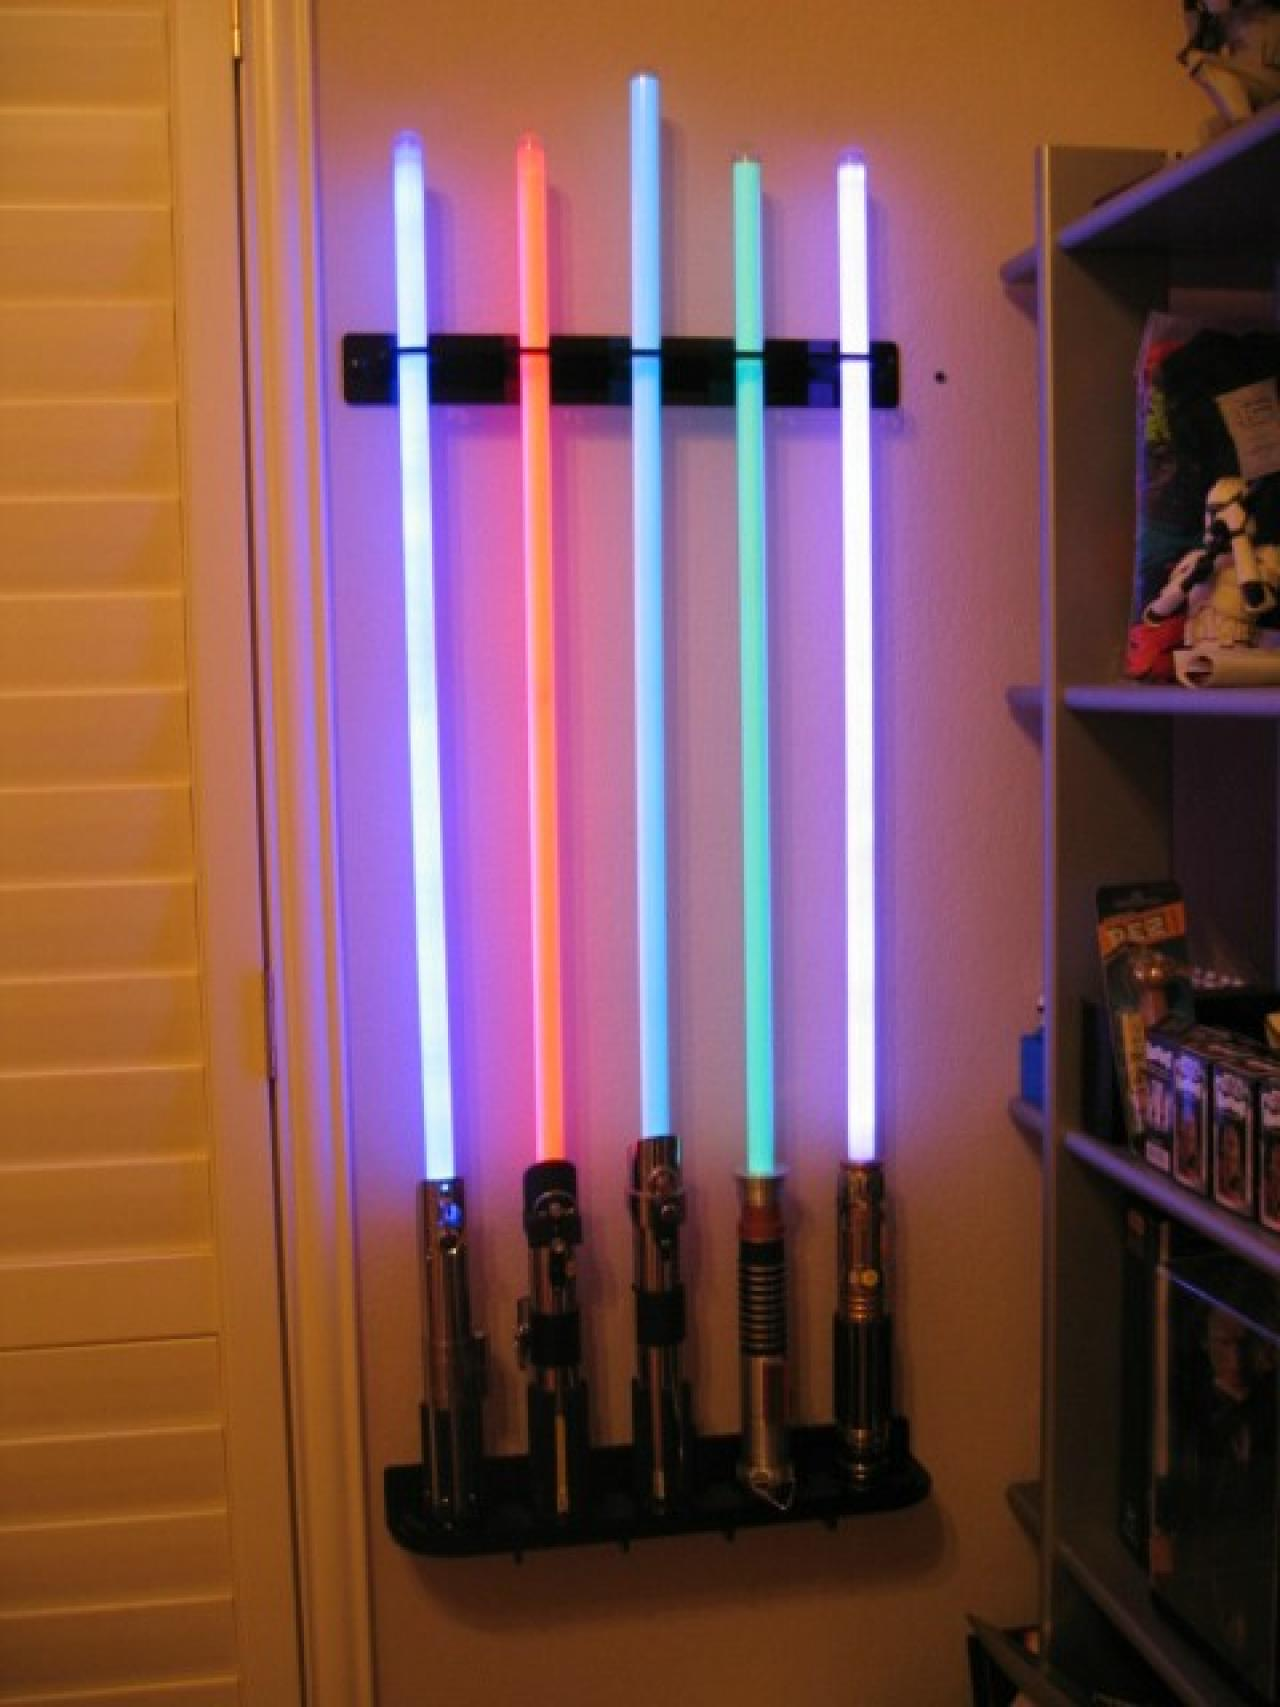 24 amazing (and weird) lightsaber products   SyfyWire